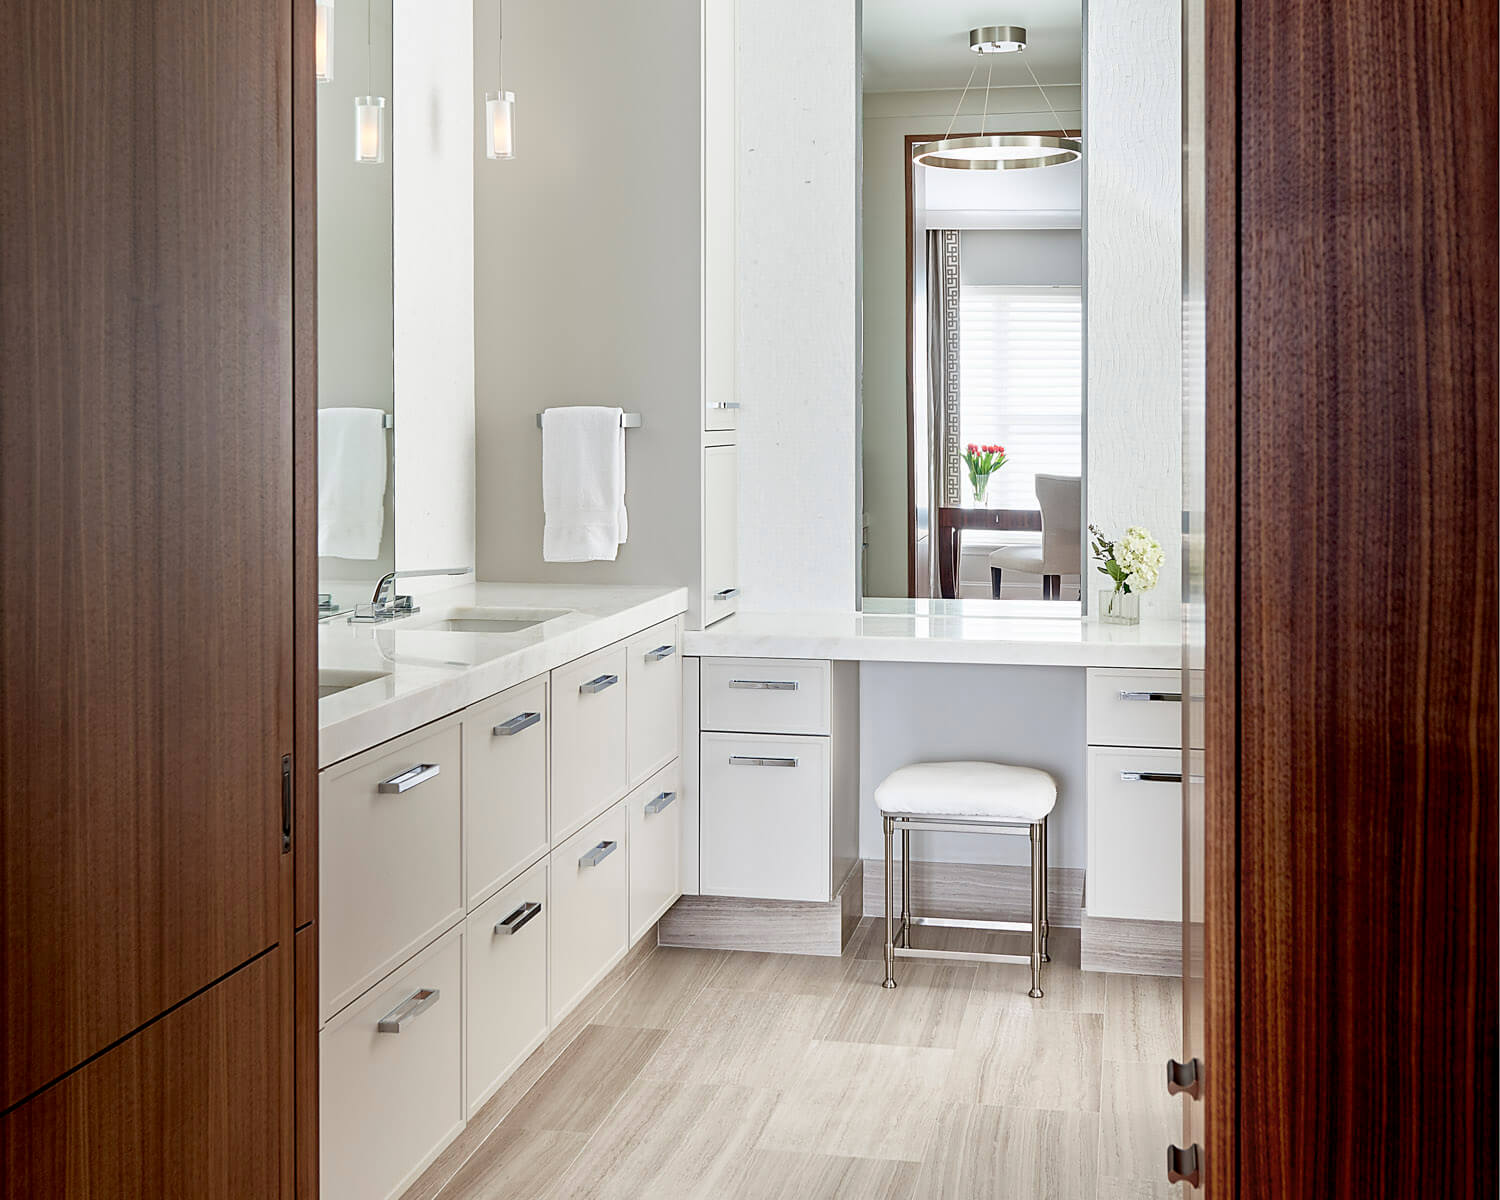 Modern Cabinetry Design For The Bath